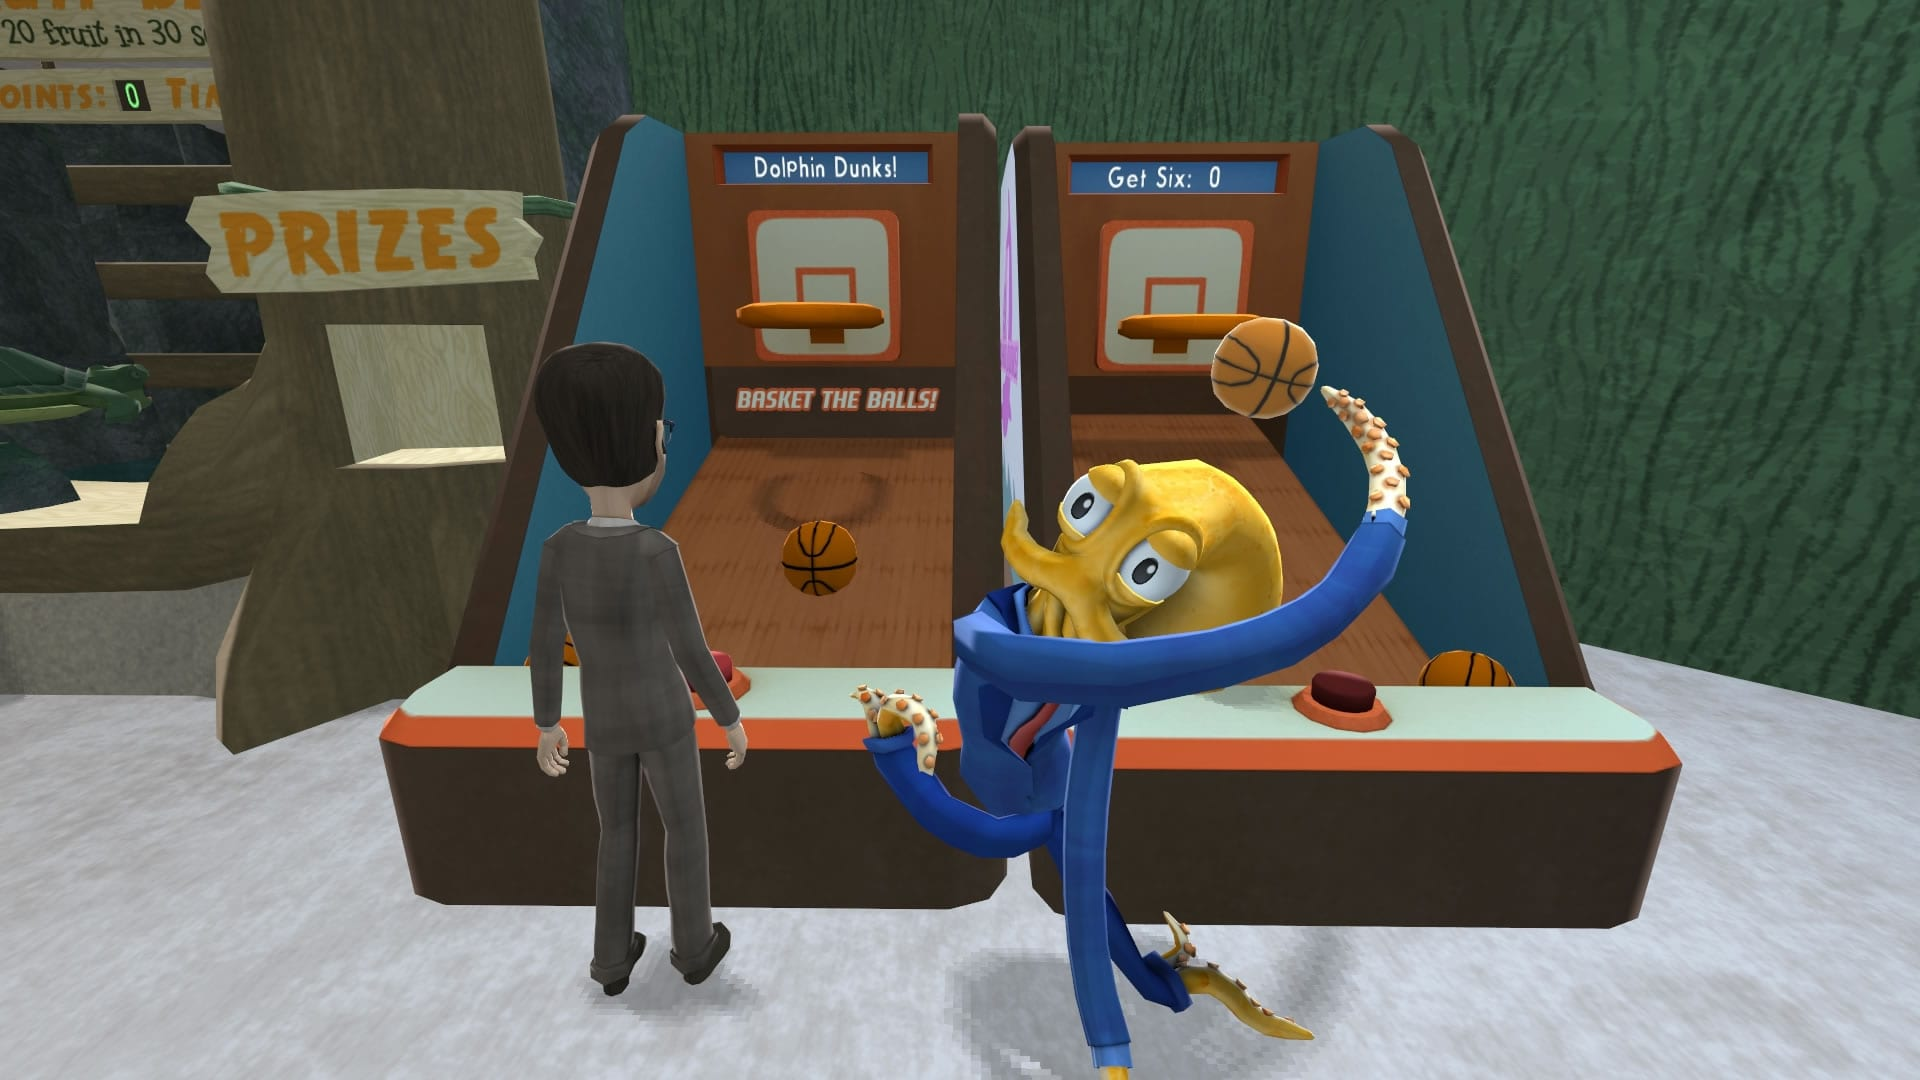 octodad basketball